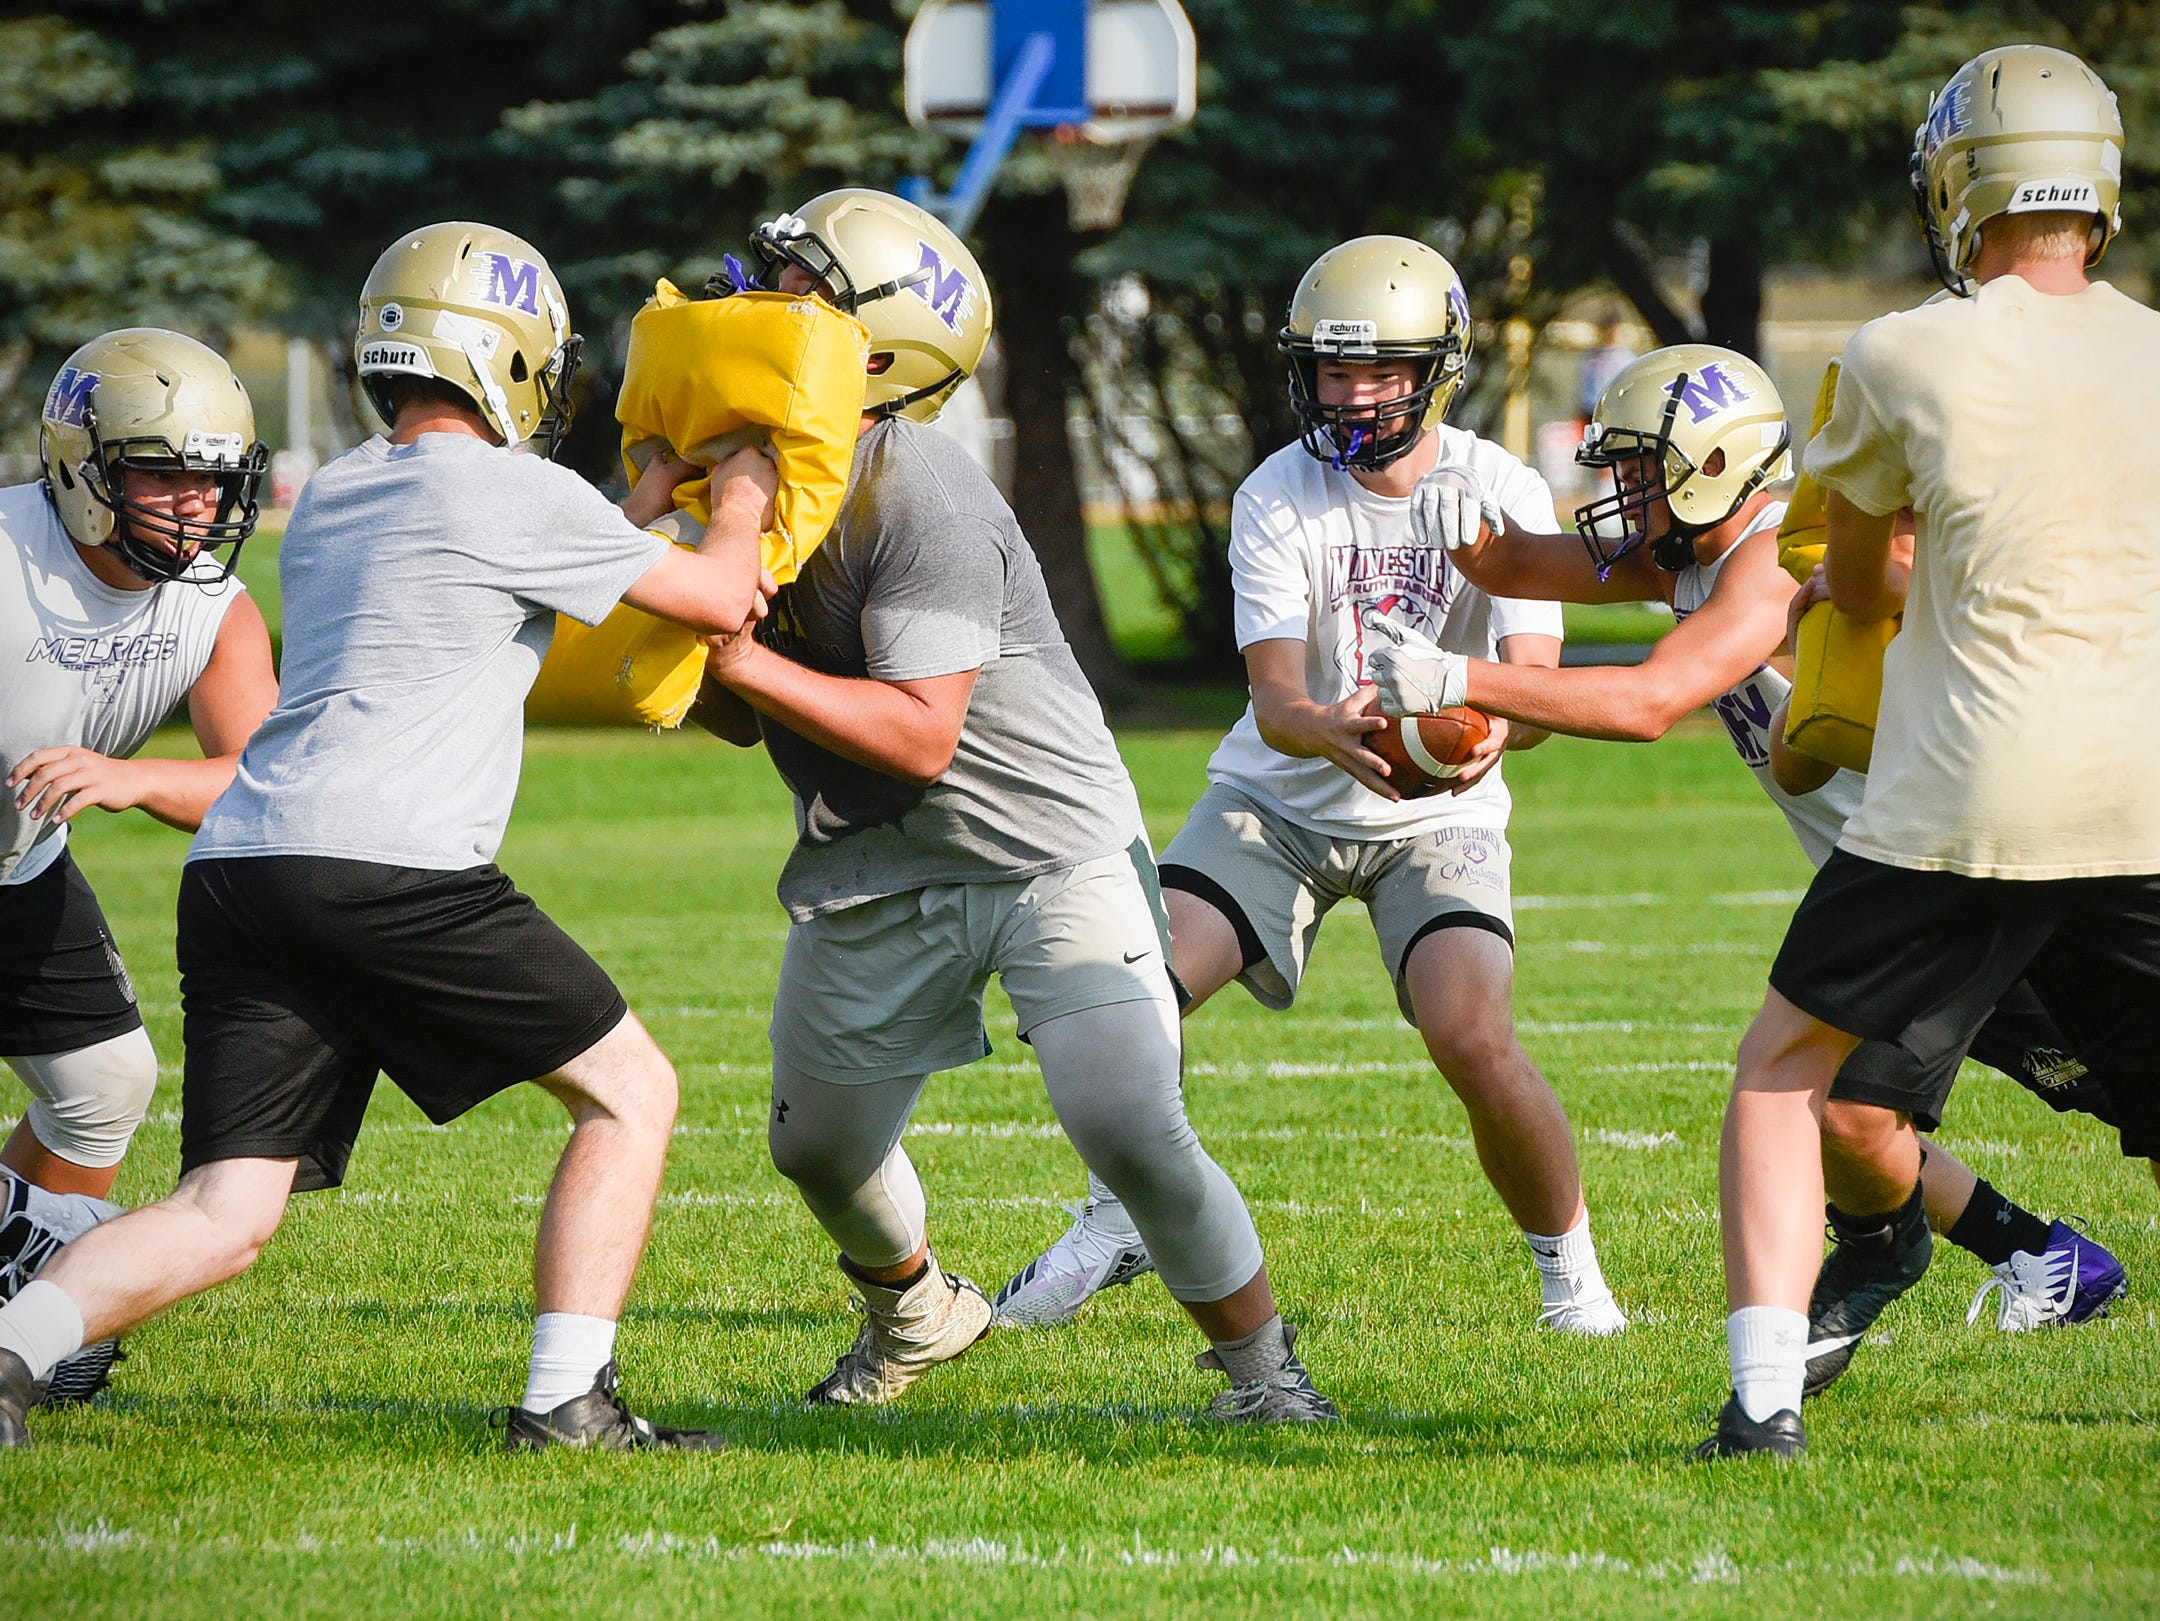 Melrose quarterback Reegan Nelson hands off the ball on a play Wednesday, Aug. 15, during practice.